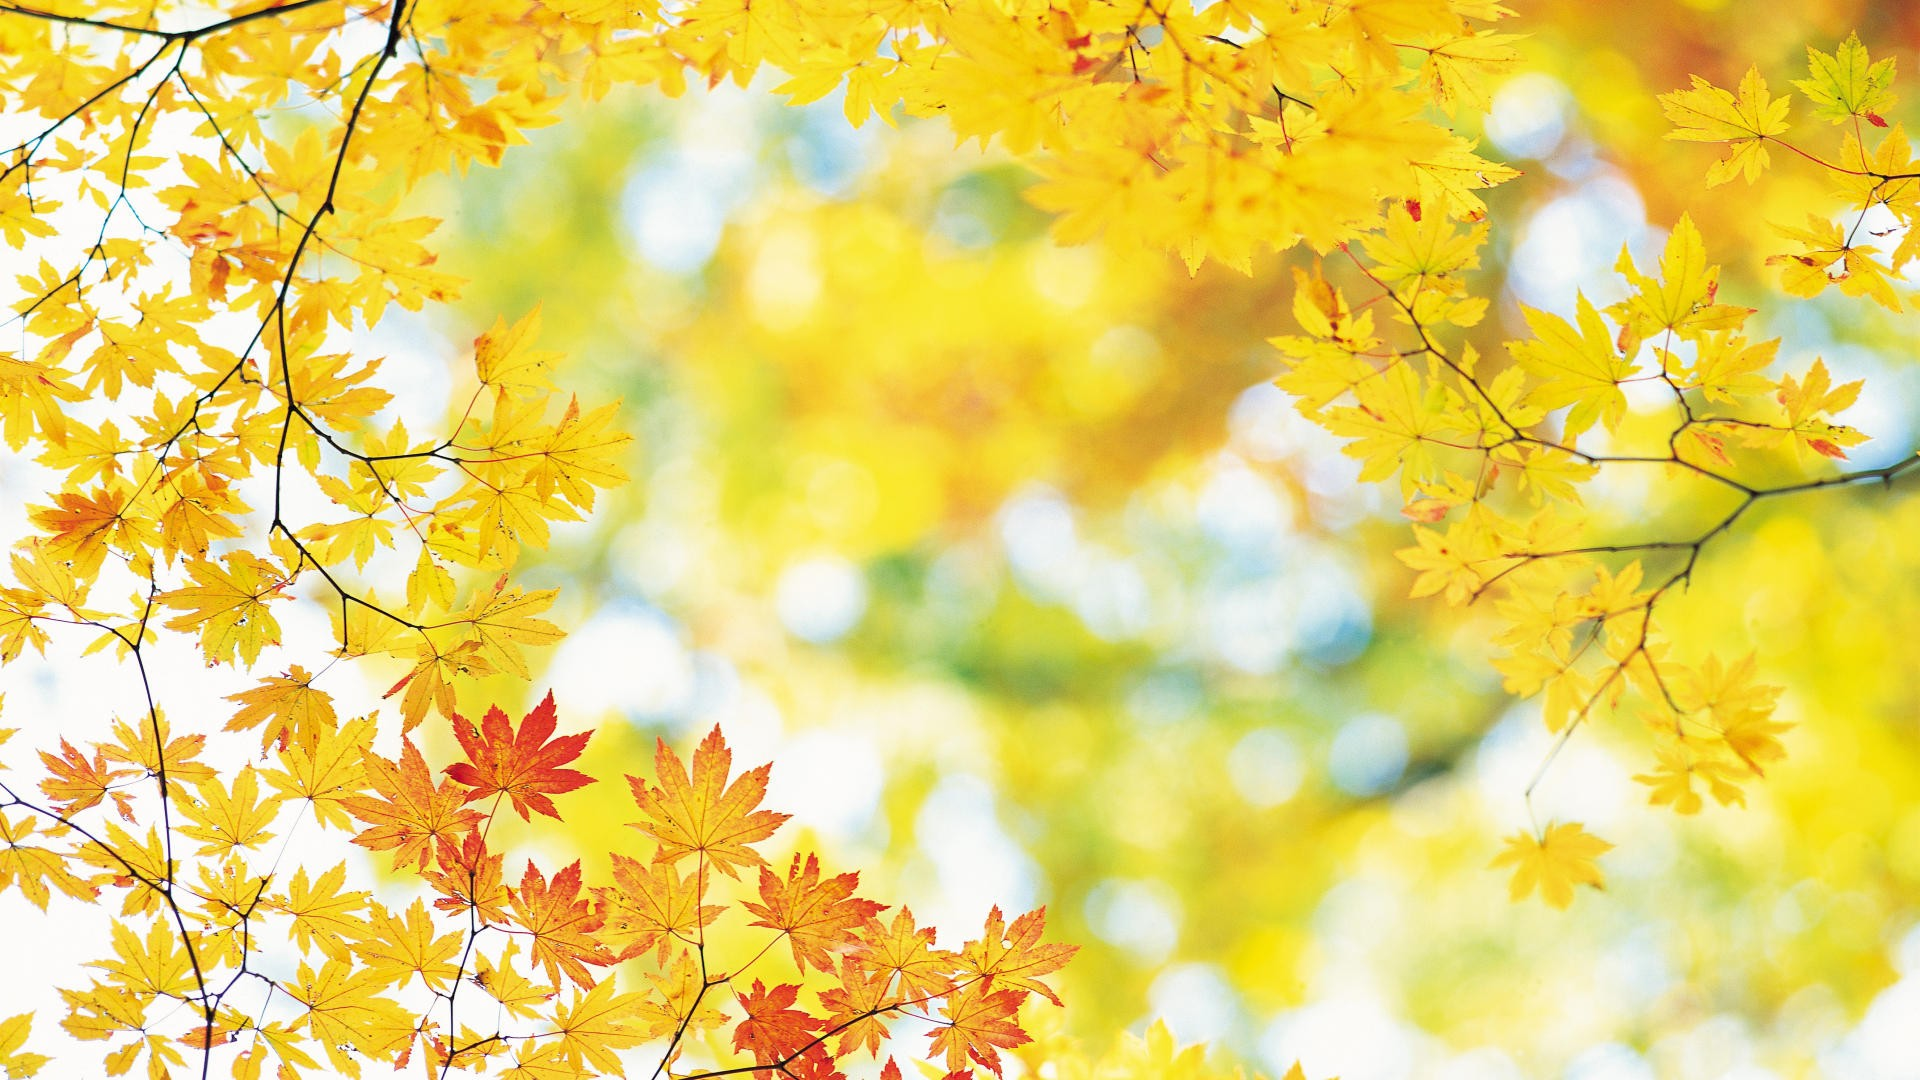 Download Autumn Leaves Wallpaper 1920x1080 Wallpoper 390091 1920x1080